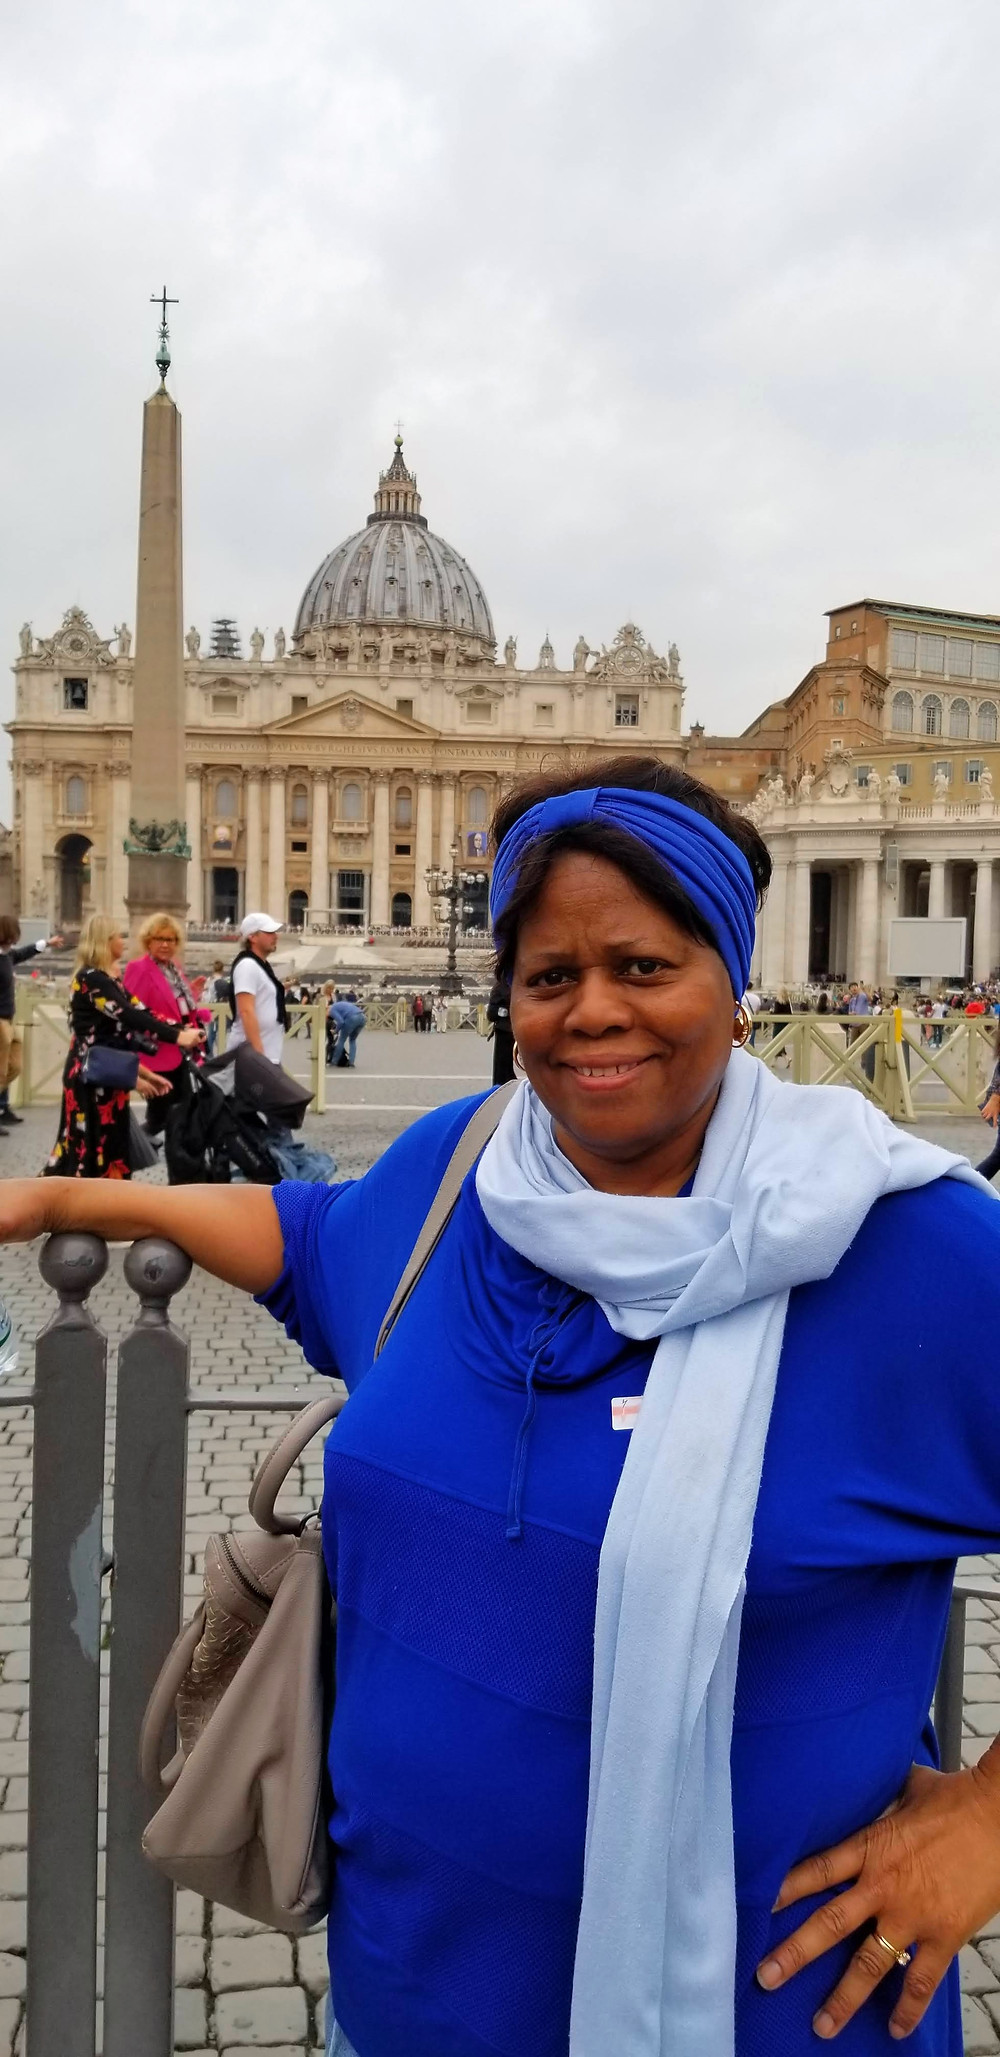 Ruth in front of St. Peter's Basilica at the Vatican (Rome, Italy)